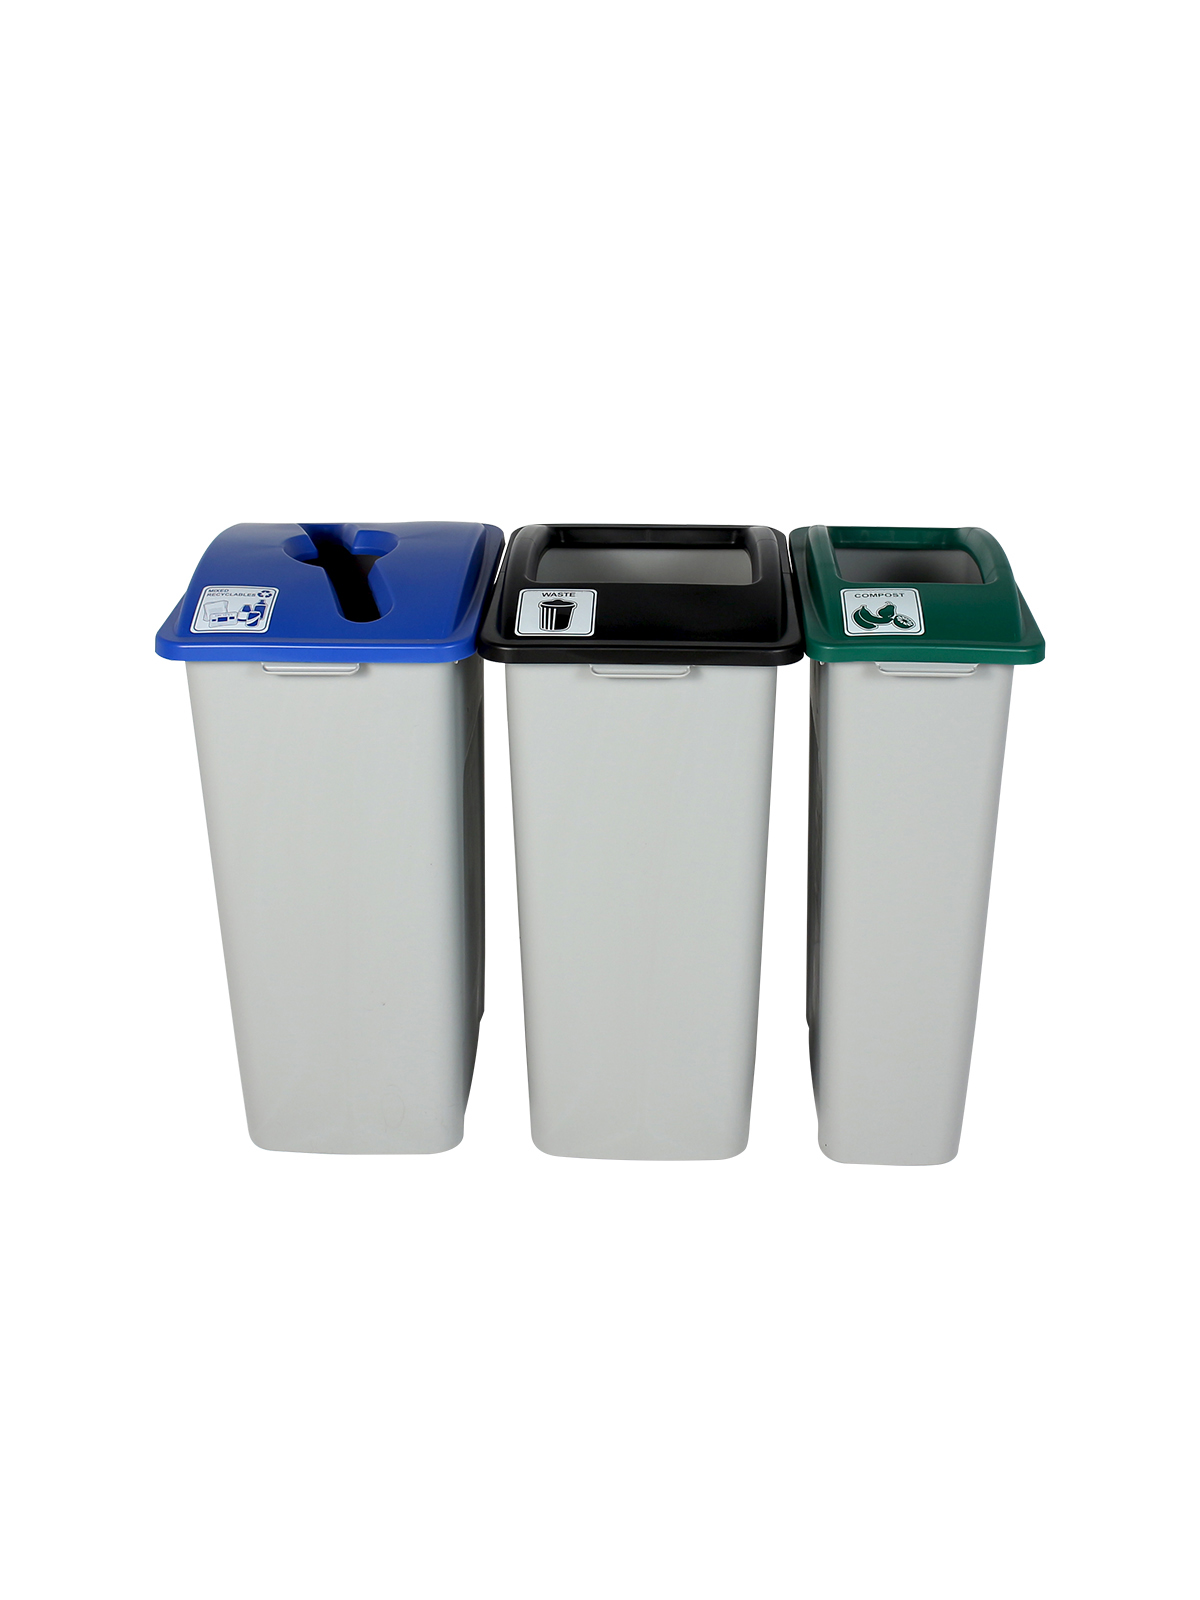 WASTE WATCHER XL - Triple - Mixed Recyclables-Compost-Waste - Mixed-Full - Grey-Blue-Green-Black